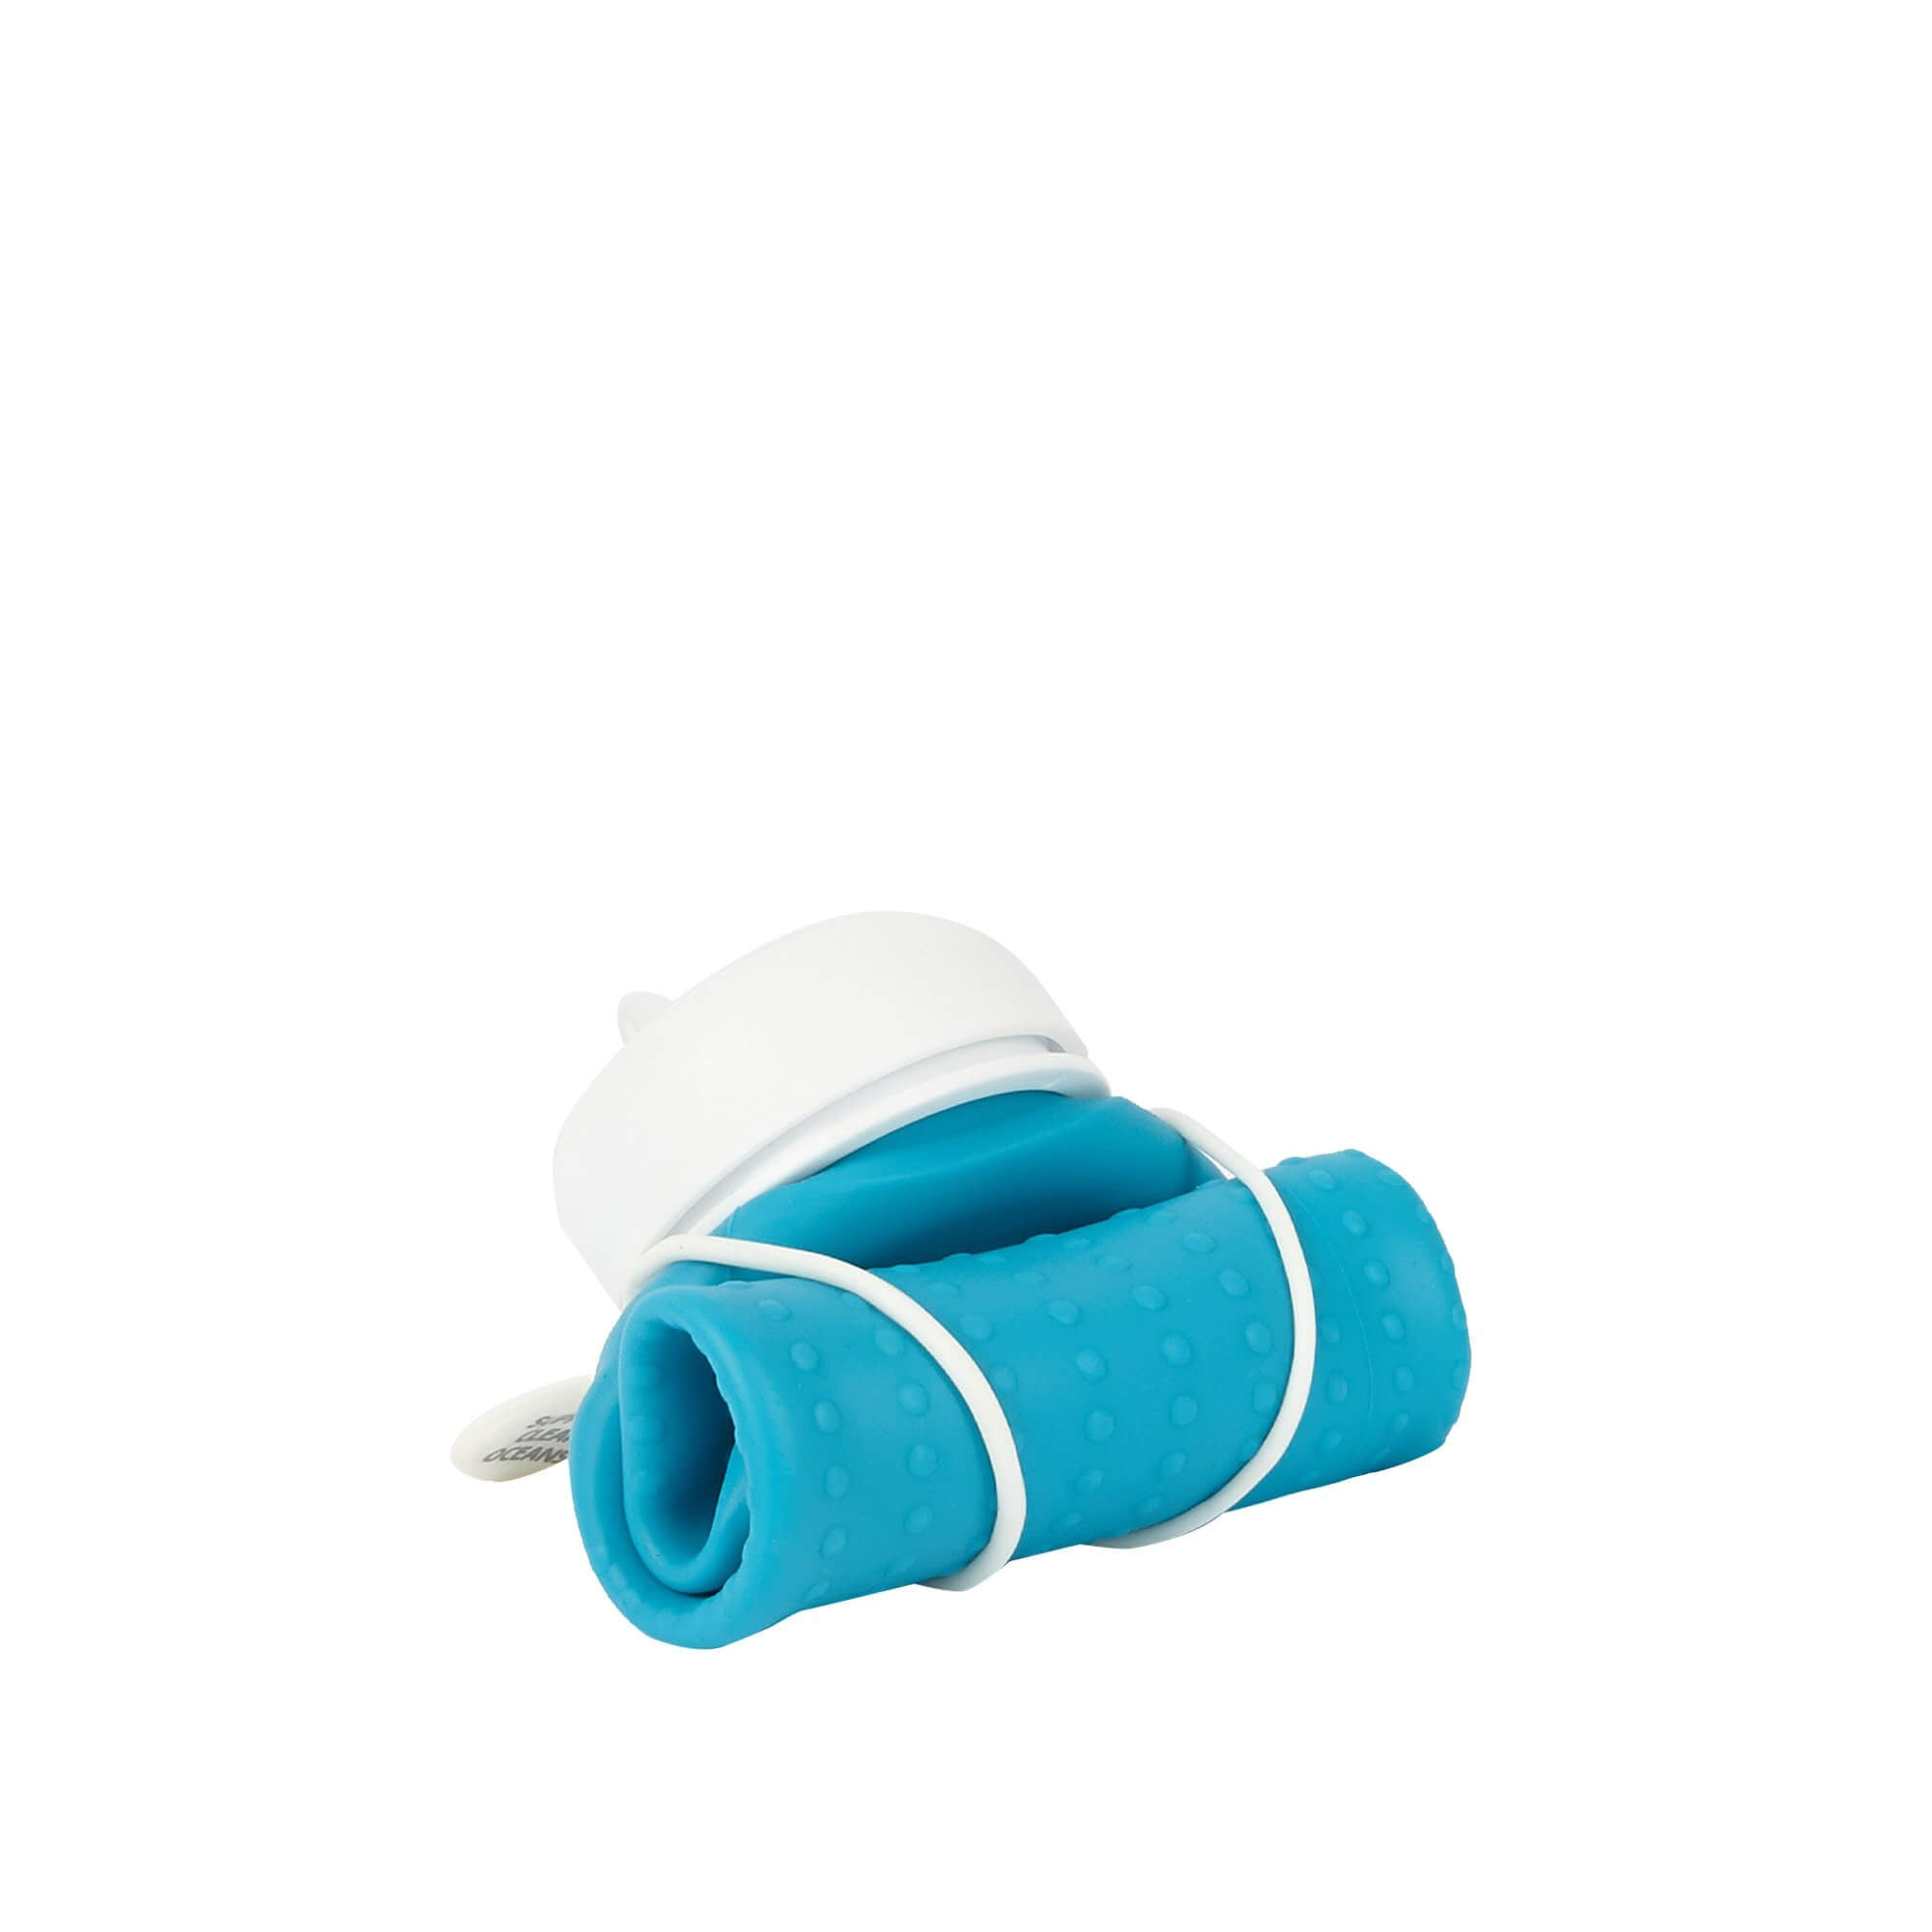 Rolla bottle aqua white lid white strap rolled |The Home  Maven